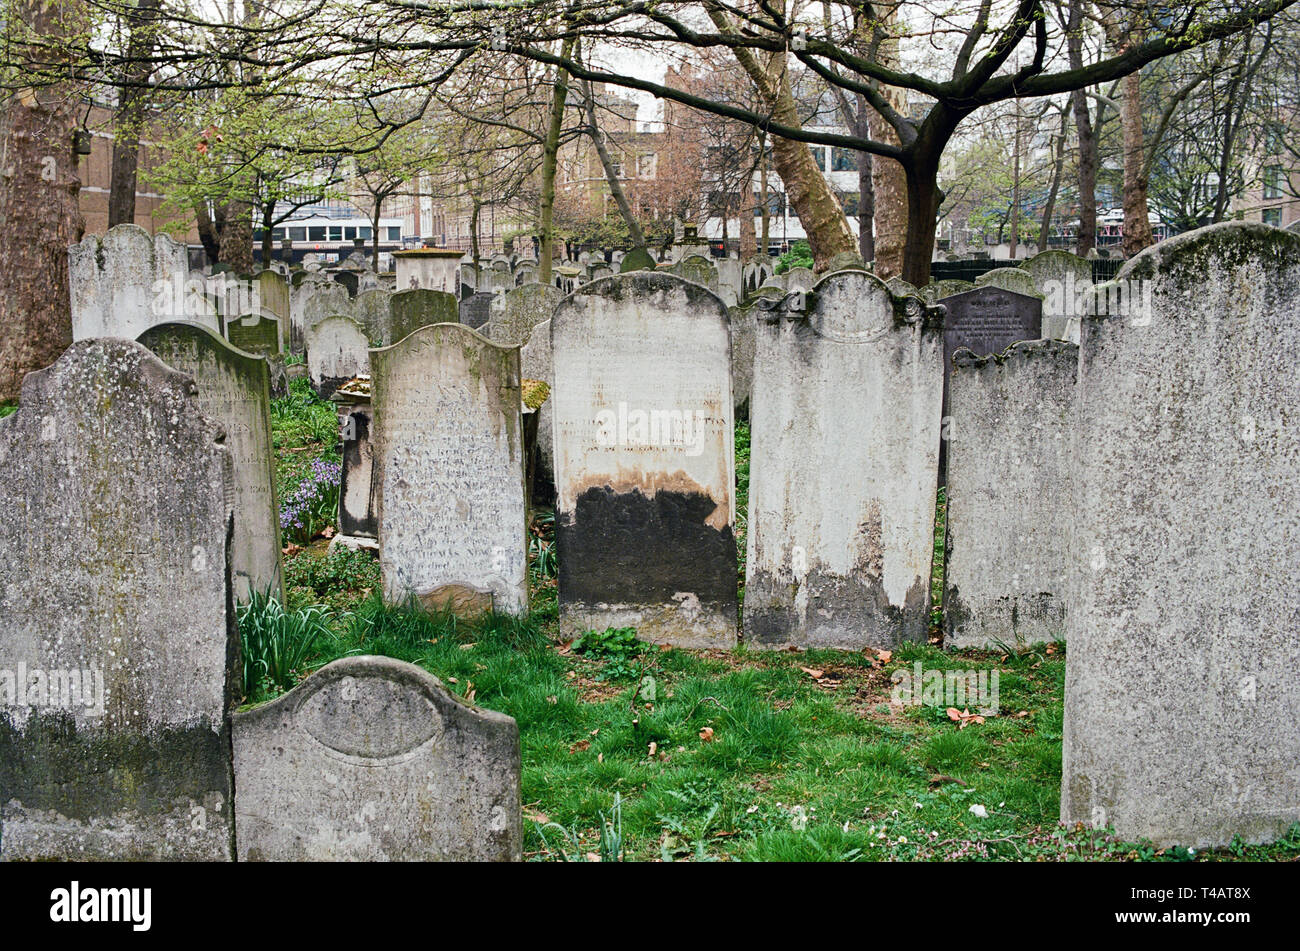 Bunhill Fields burial ground in the London Borough of Islington, London UK - Stock Image